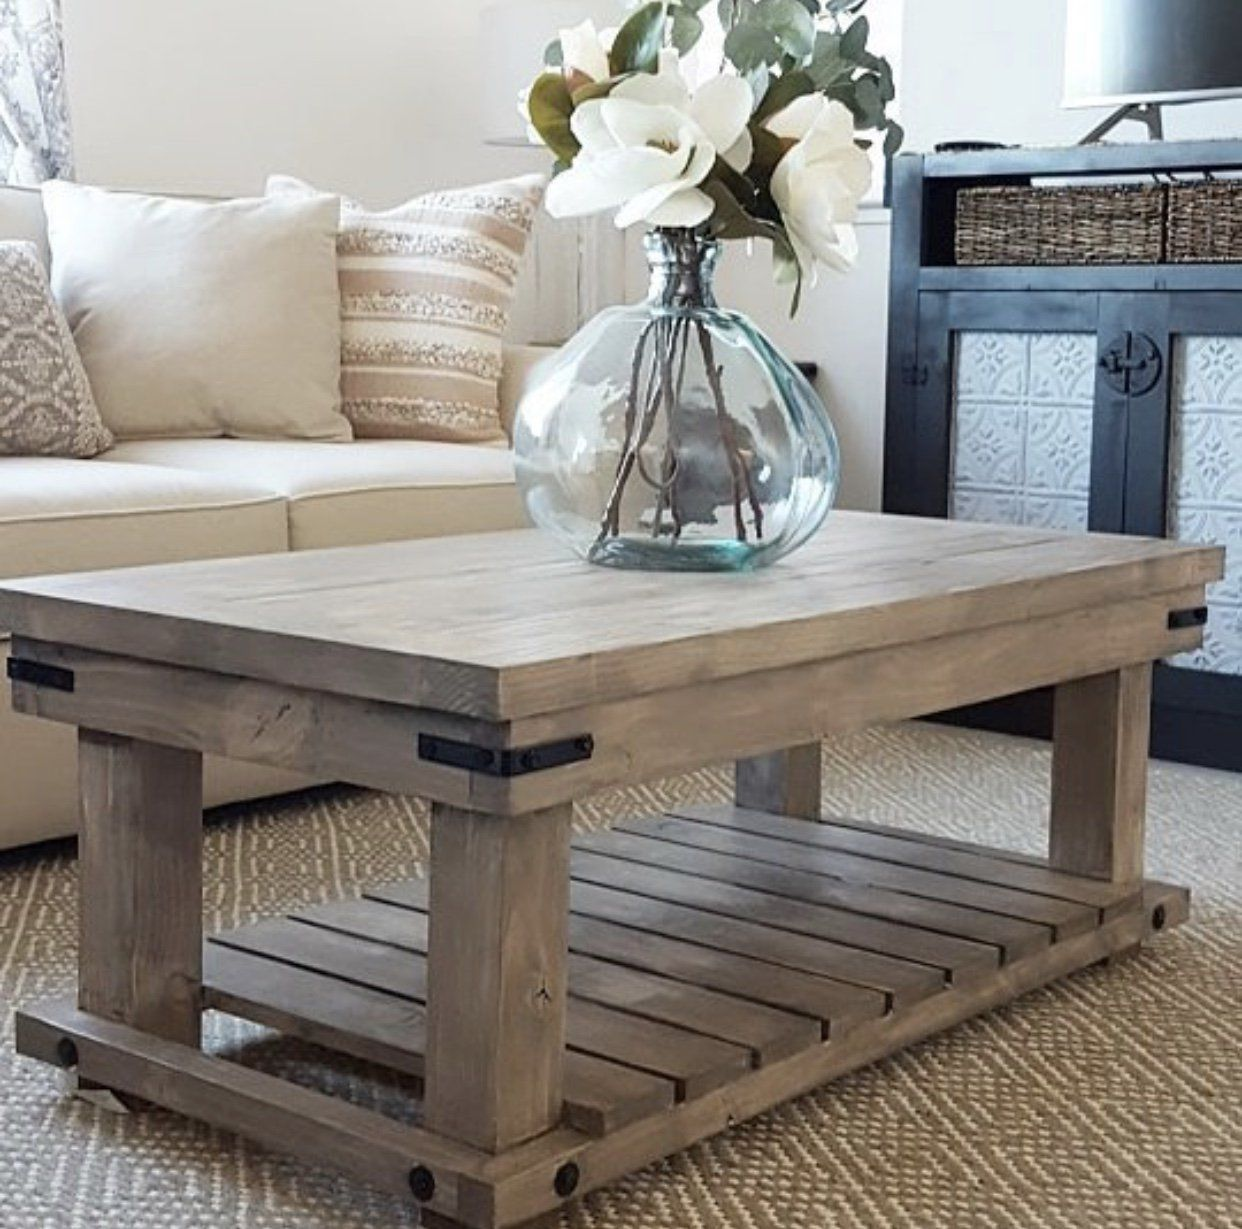 diy industrial coffee table inspiration end diyindustrialcoffeetable diyprojects diyideas diyinspiration diycrafts diytutorial plexiglass brown leather sofa living room patio